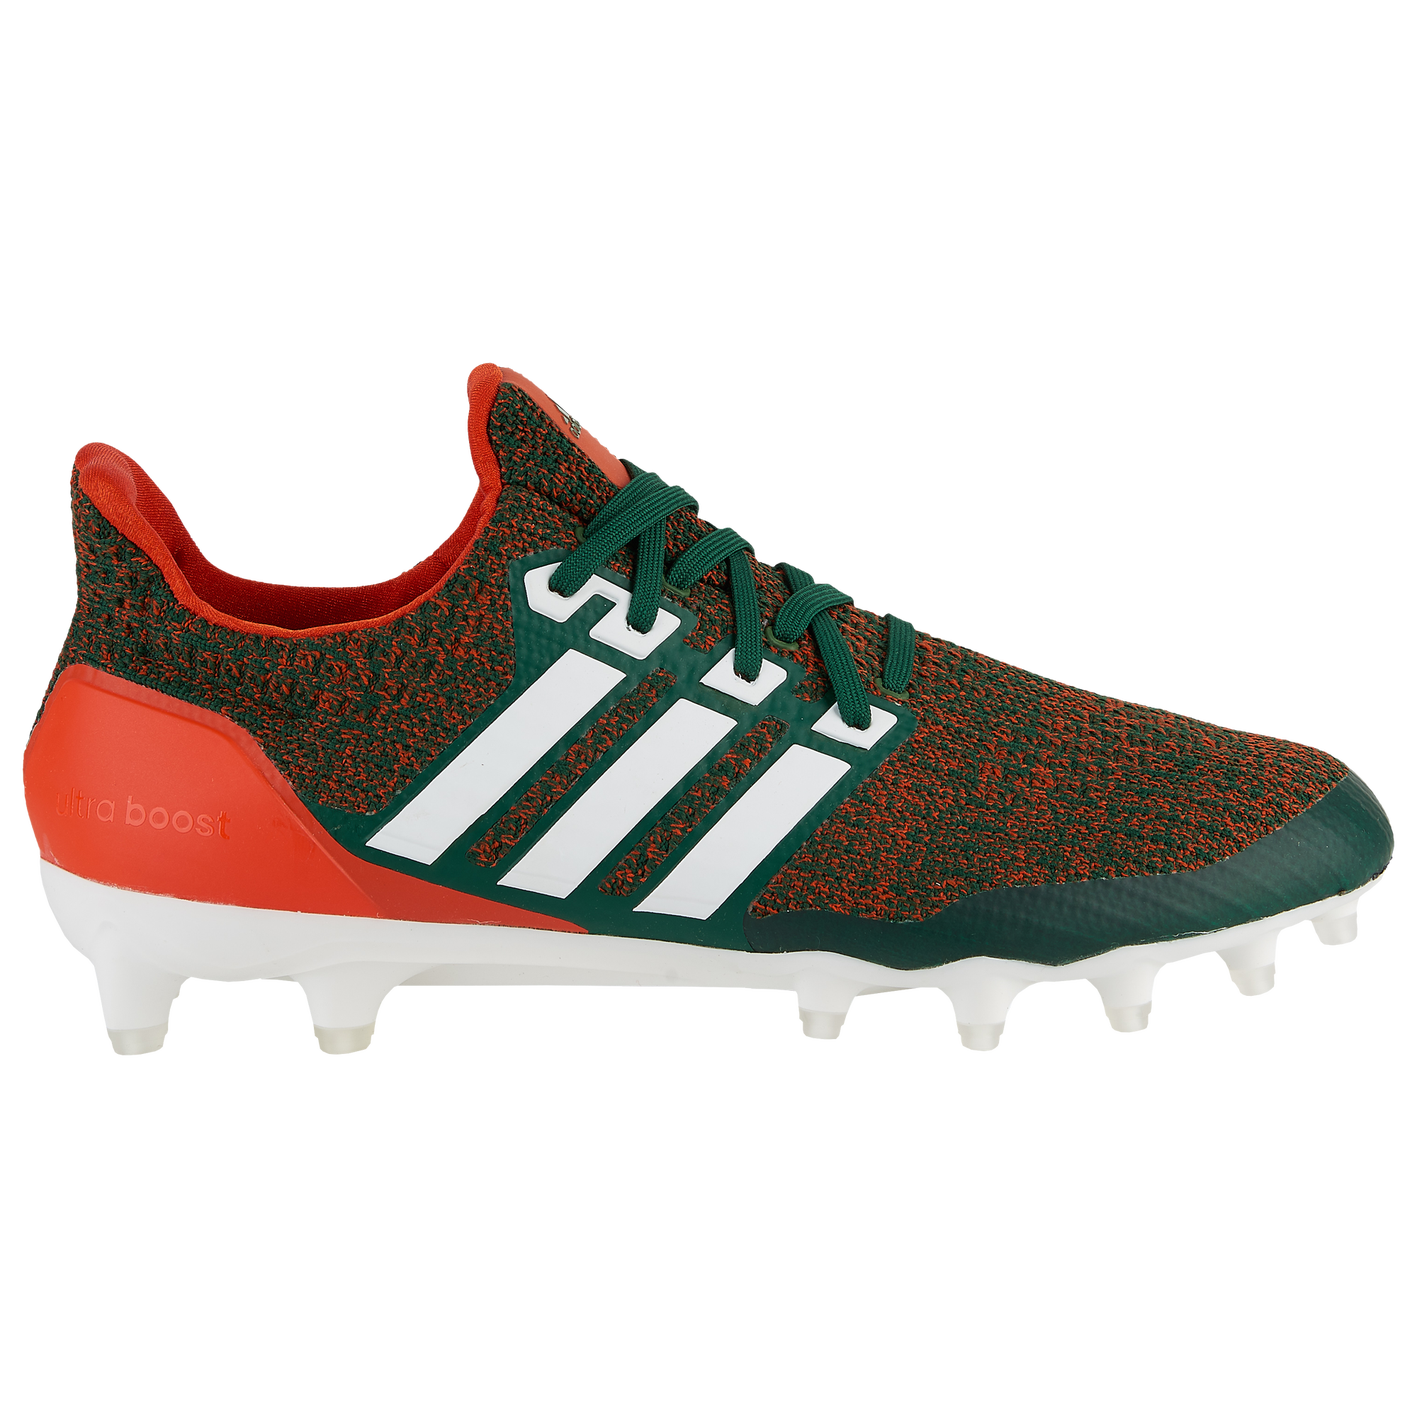 010fda60c adidas Ultraboost Cleat - Men s - Football - Shoes - Miami (Fla ...